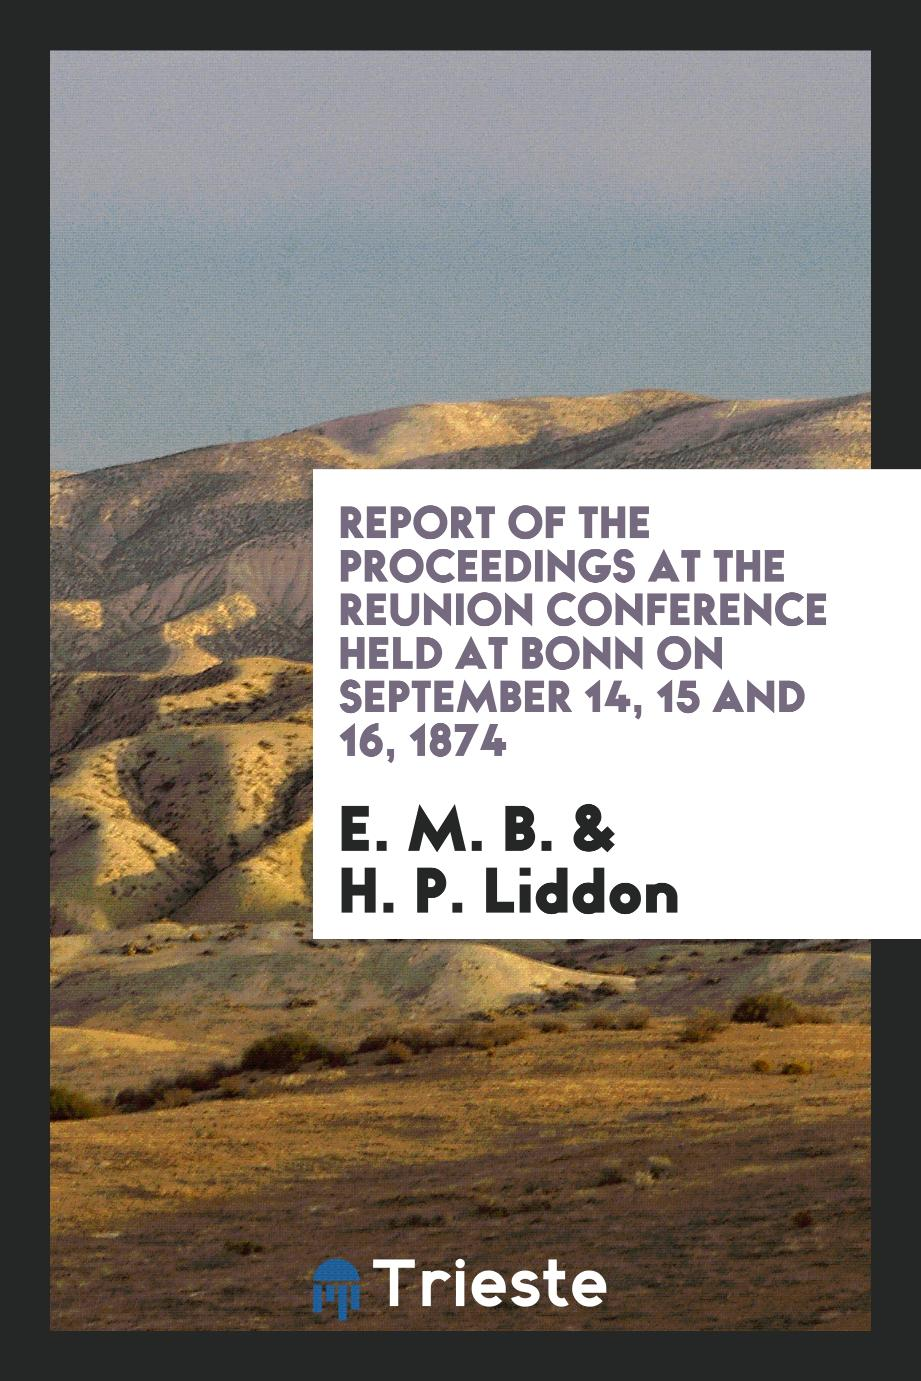 Report of the Proceedings at the Reunion Conference Held at Bonn on September 14, 15 and 16, 1874